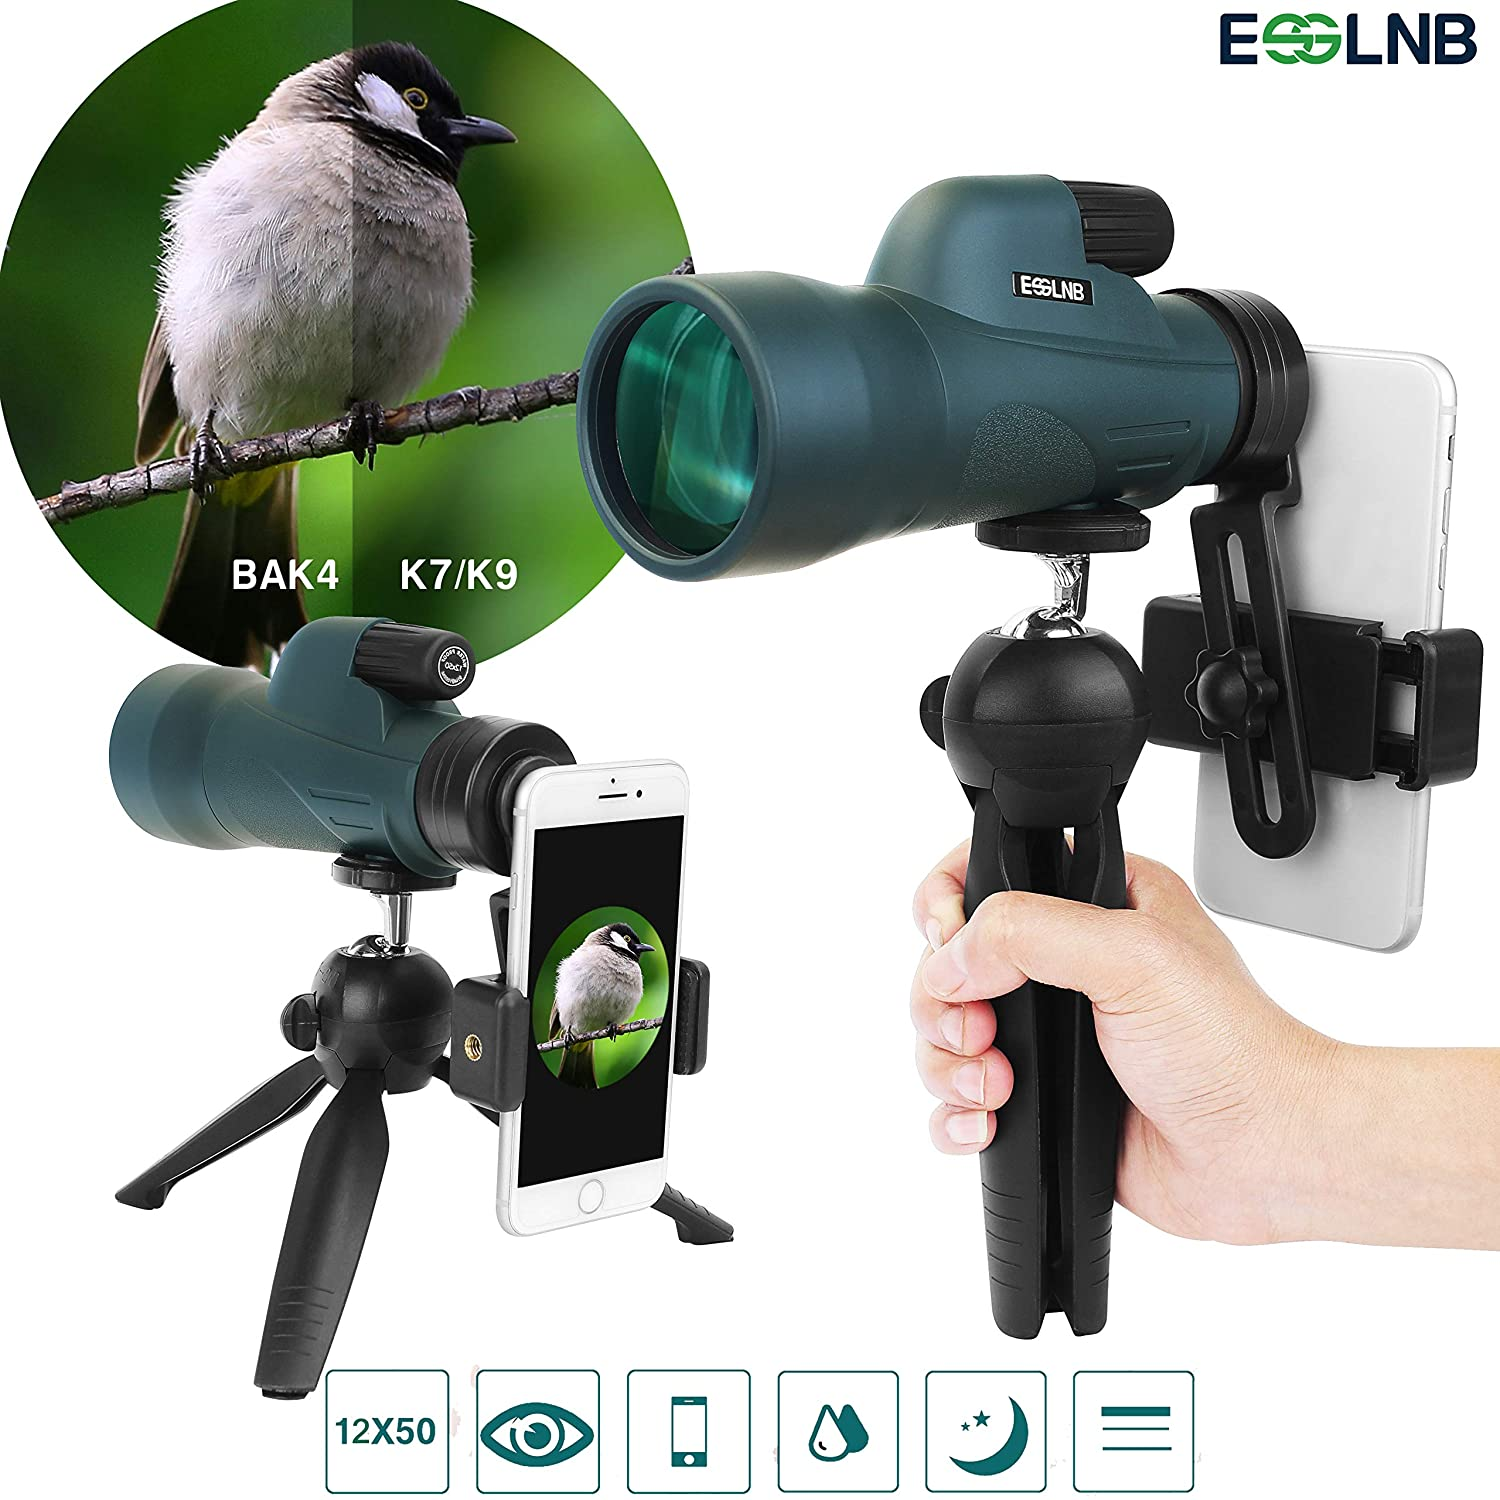 ESSLNB Monocular Telescope 12X50 with Smartphone Adapter and Extendable Tripod IPX7 Waterproof BAK4 Prism Green FMC for Bird Watching Hunting Camping